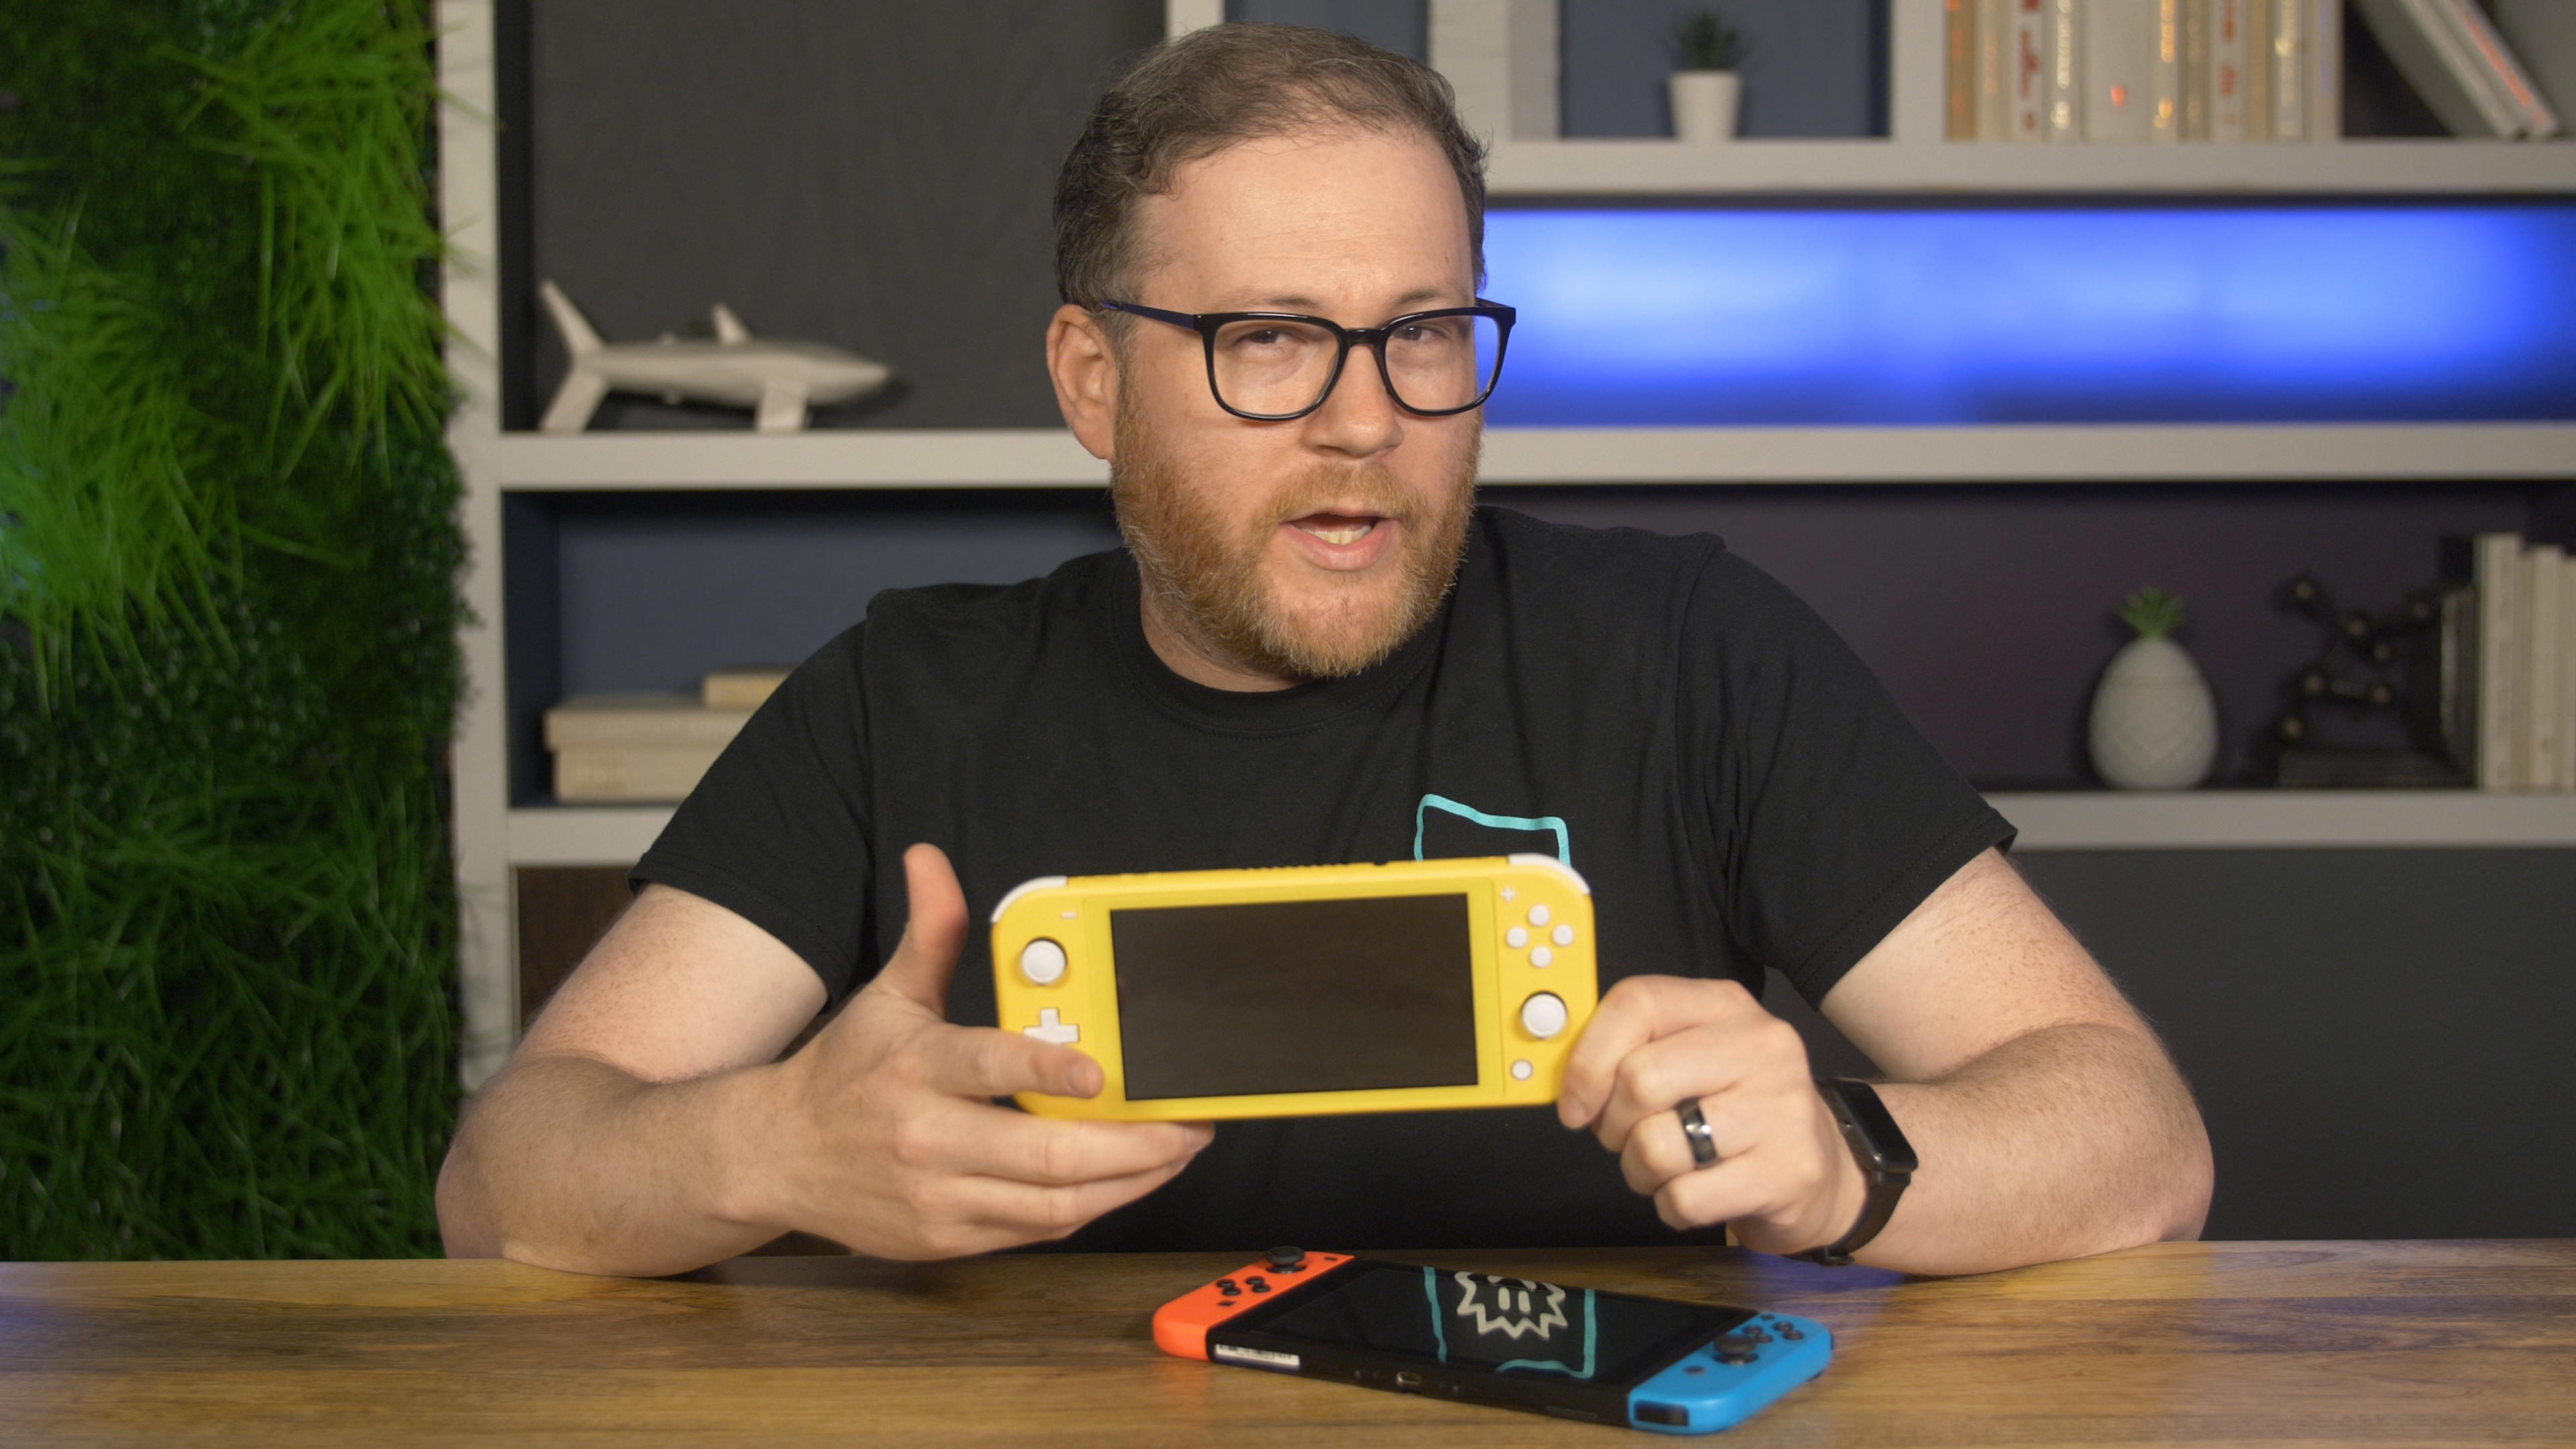 Video: The only reason to get a Switch Lite